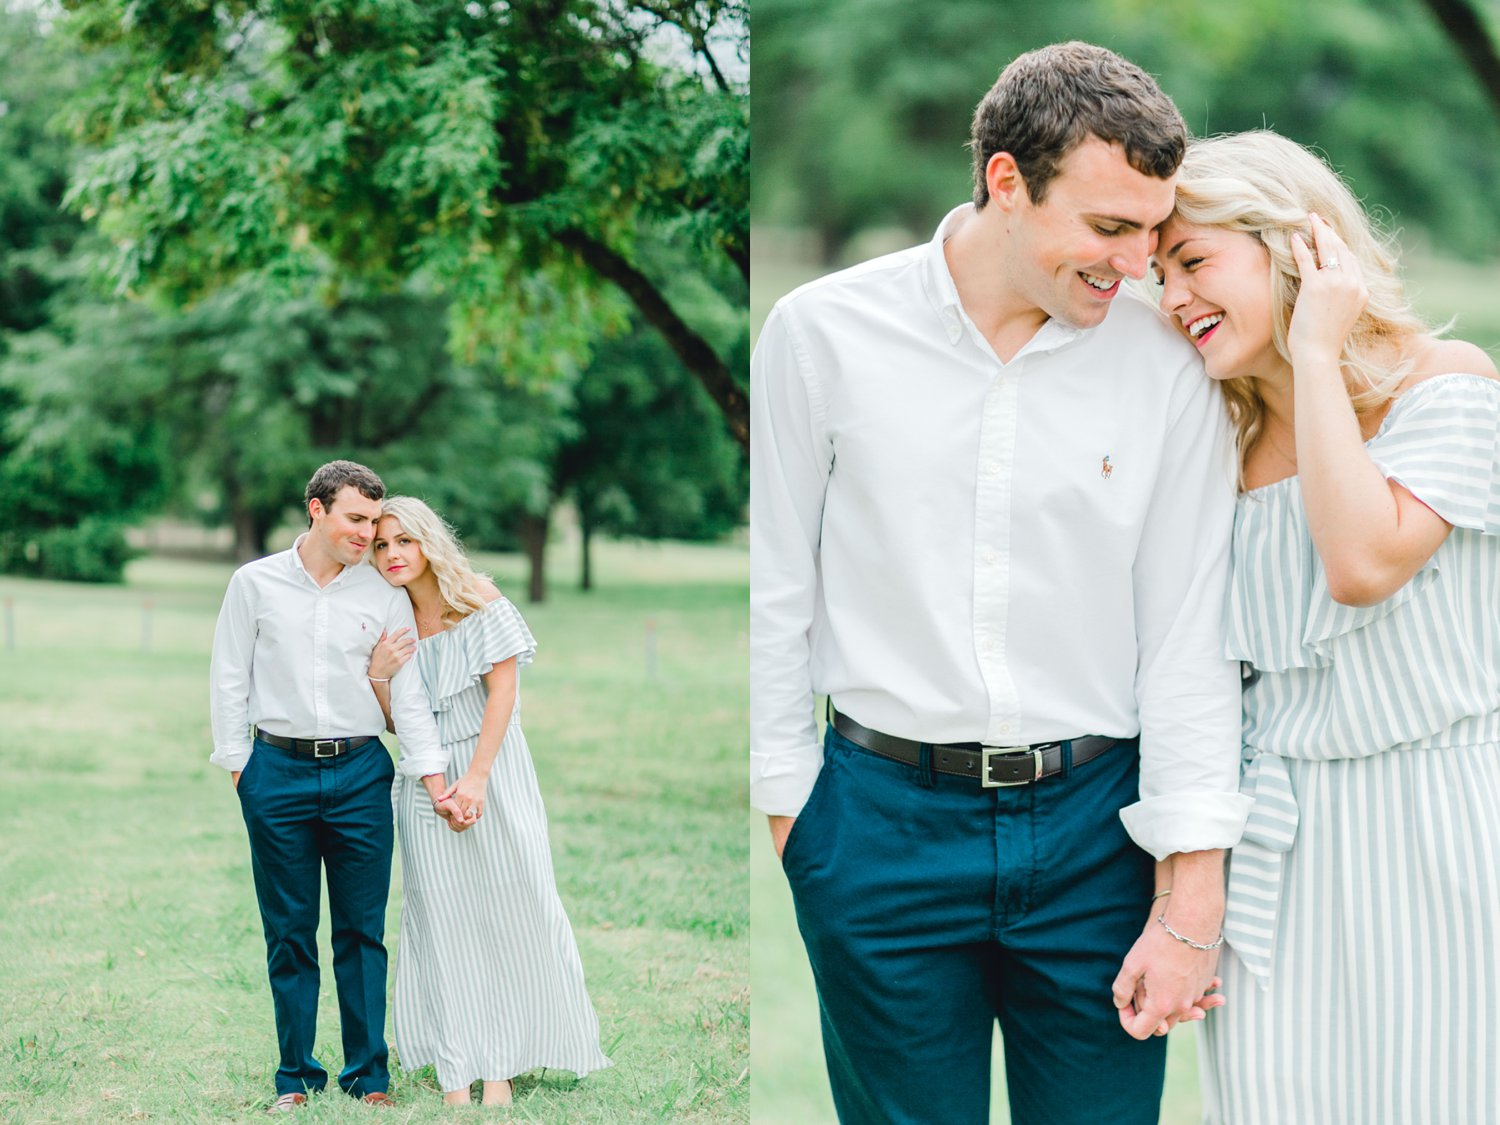 Allison_and_Clay_Smart_Engagements_ALLEEJ_Lubbock_Photographer_0010.jpg